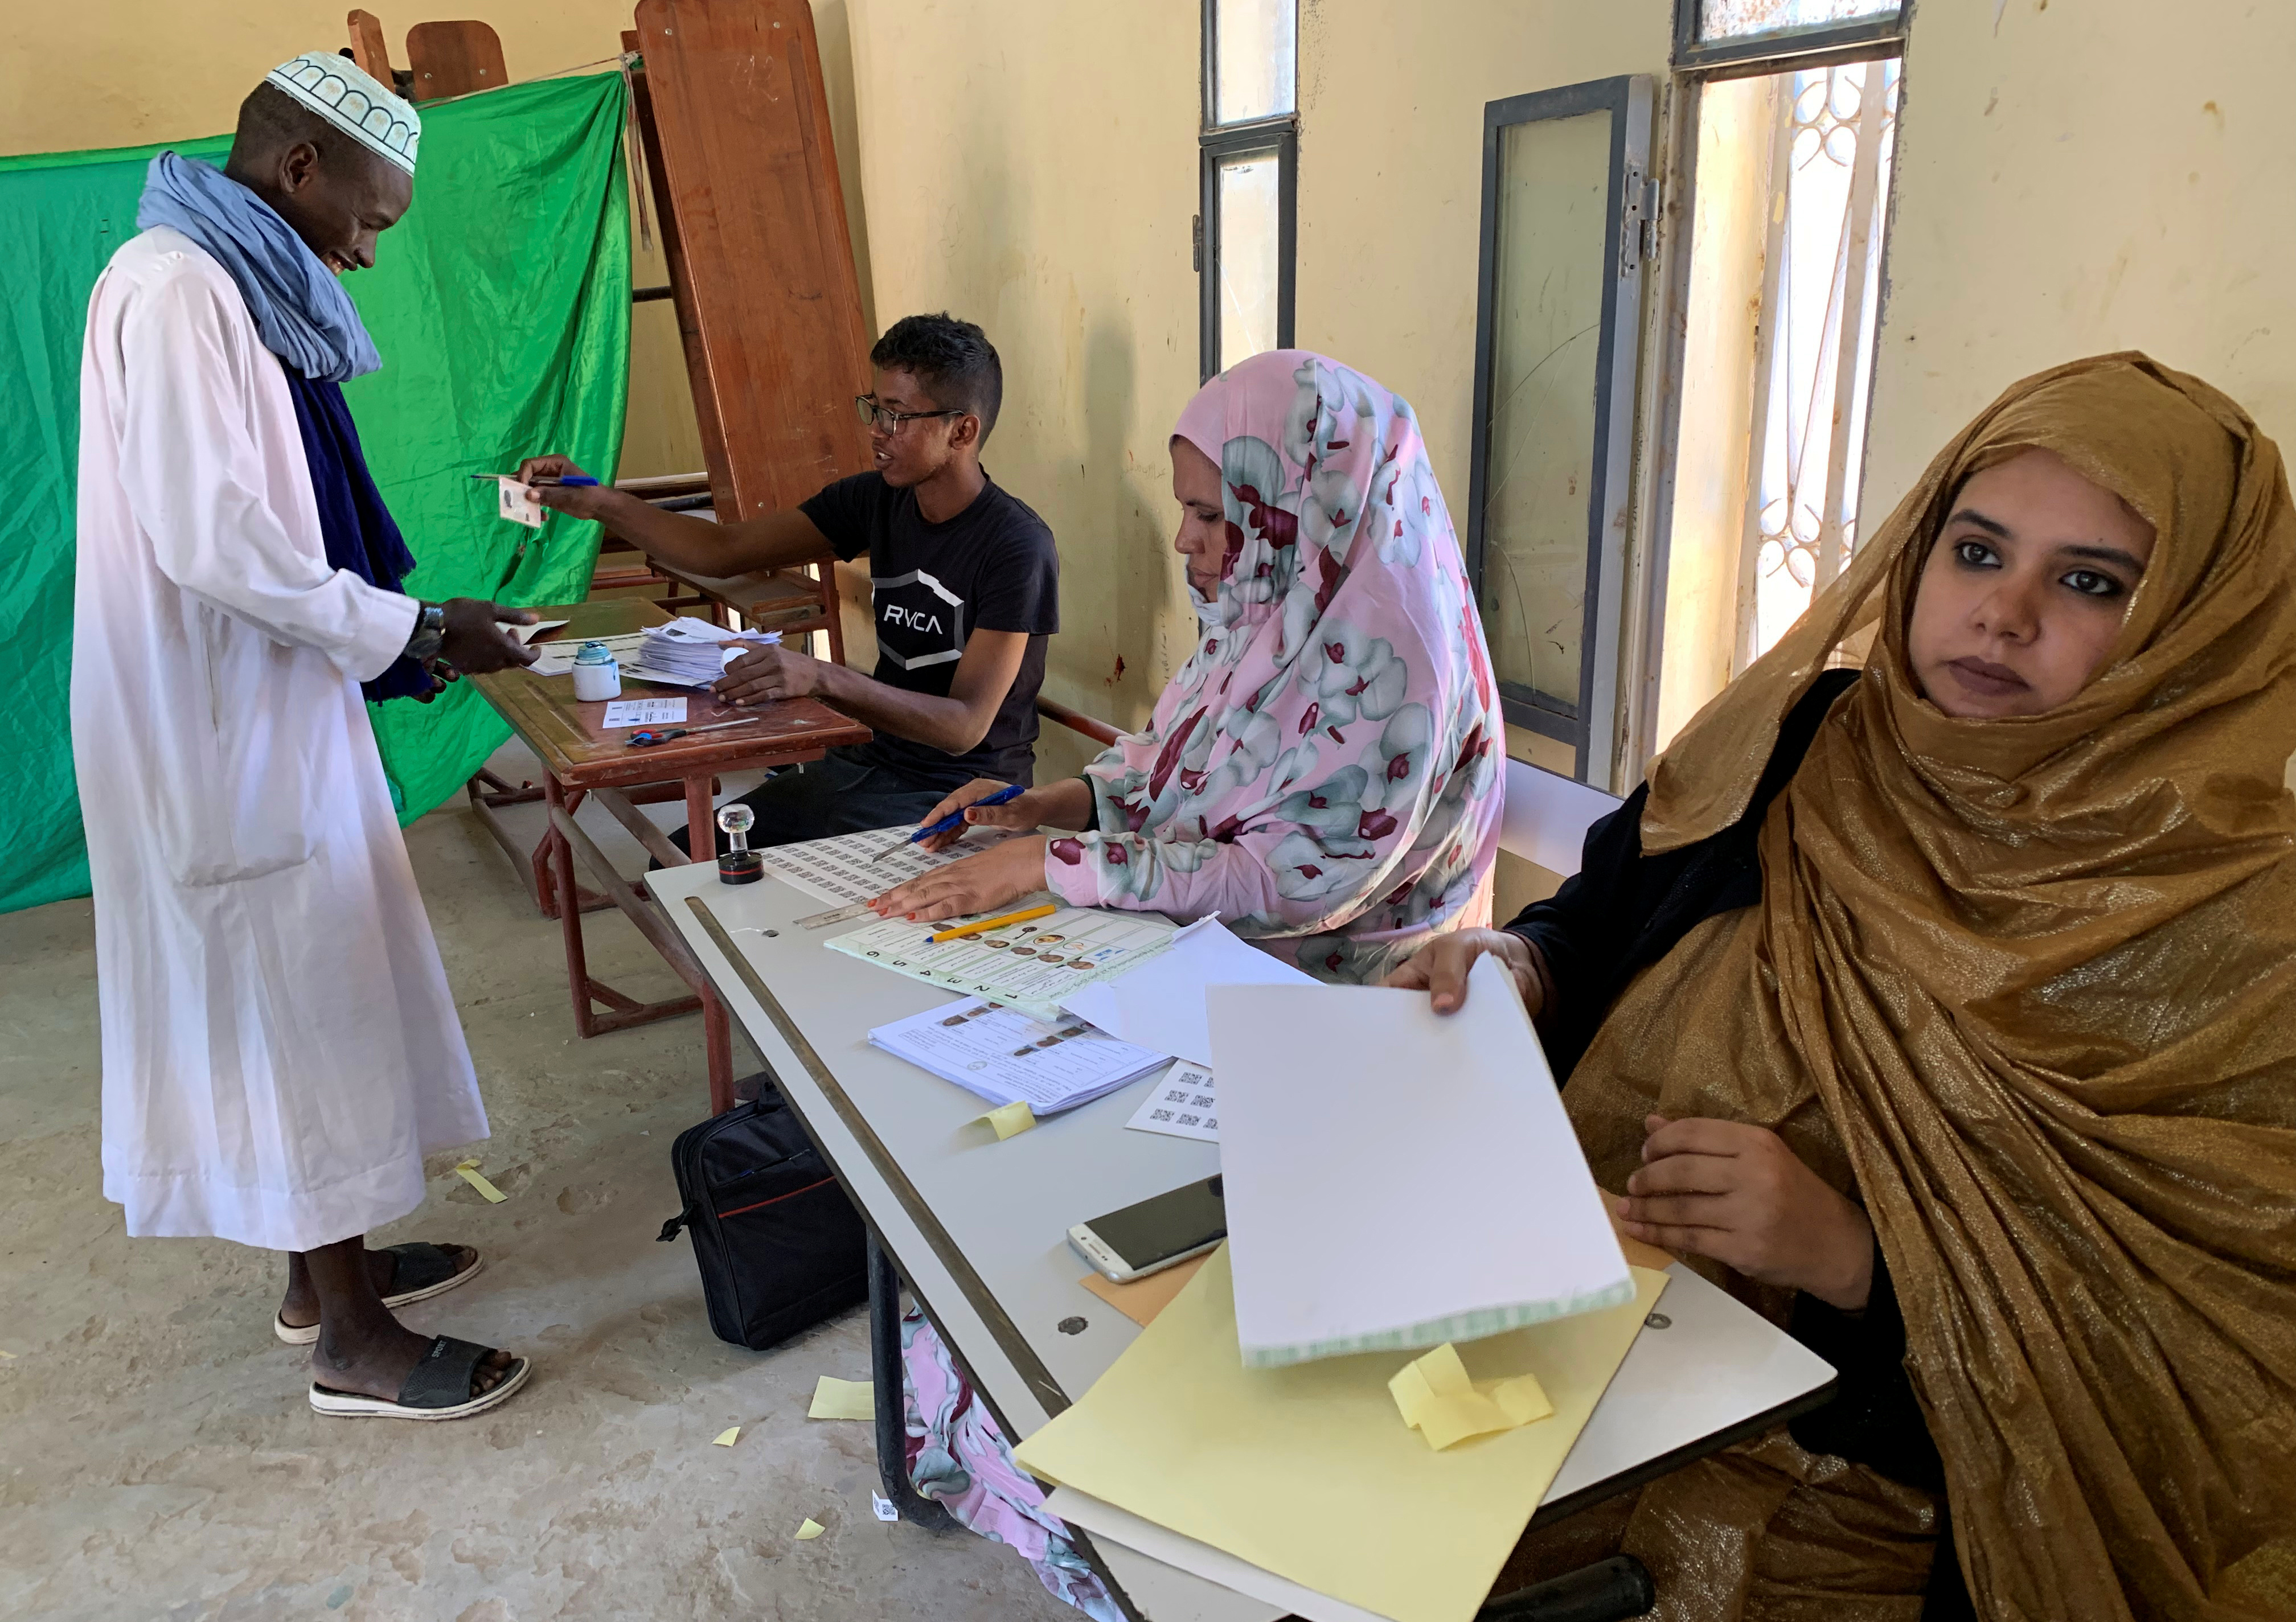 Mauritania election won by Mohamed Ould Ghazouani